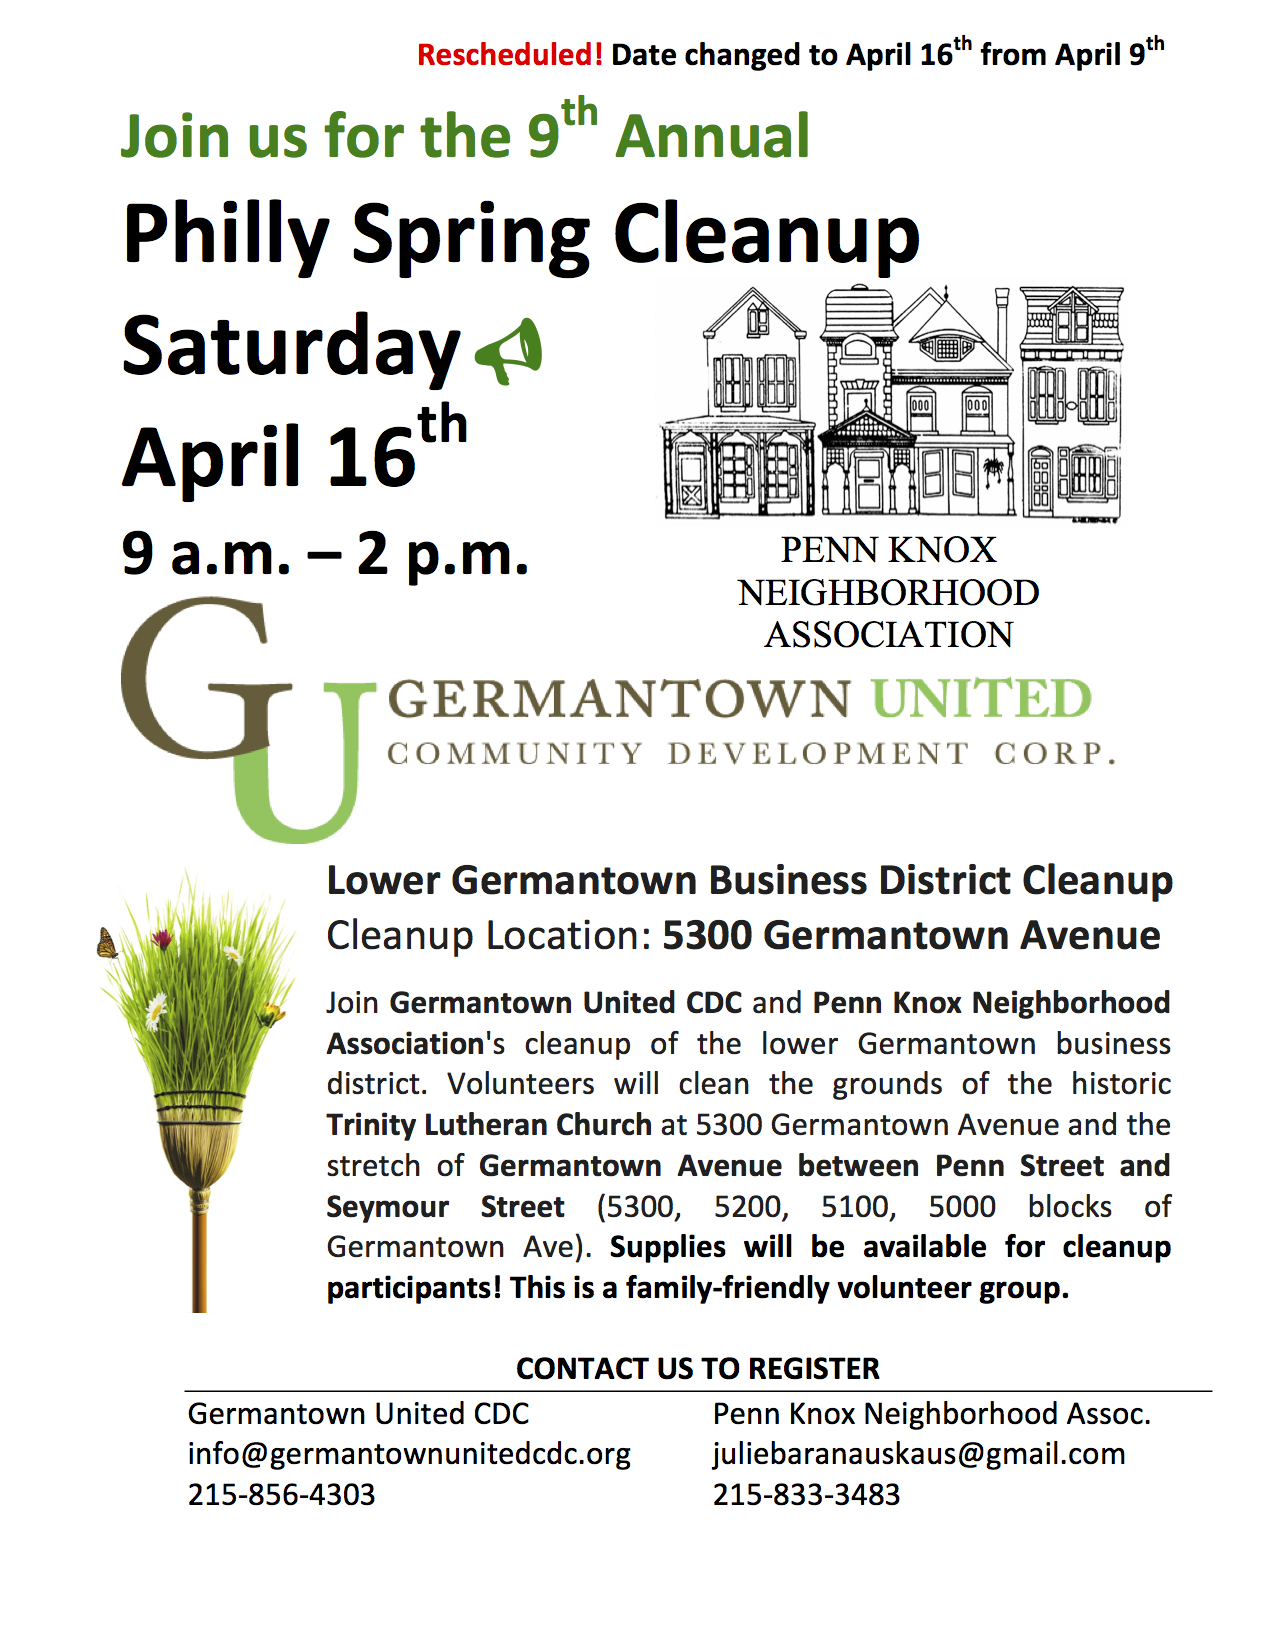 2016.04.16_PhillySpringCleanup_GUCDC_PKNA